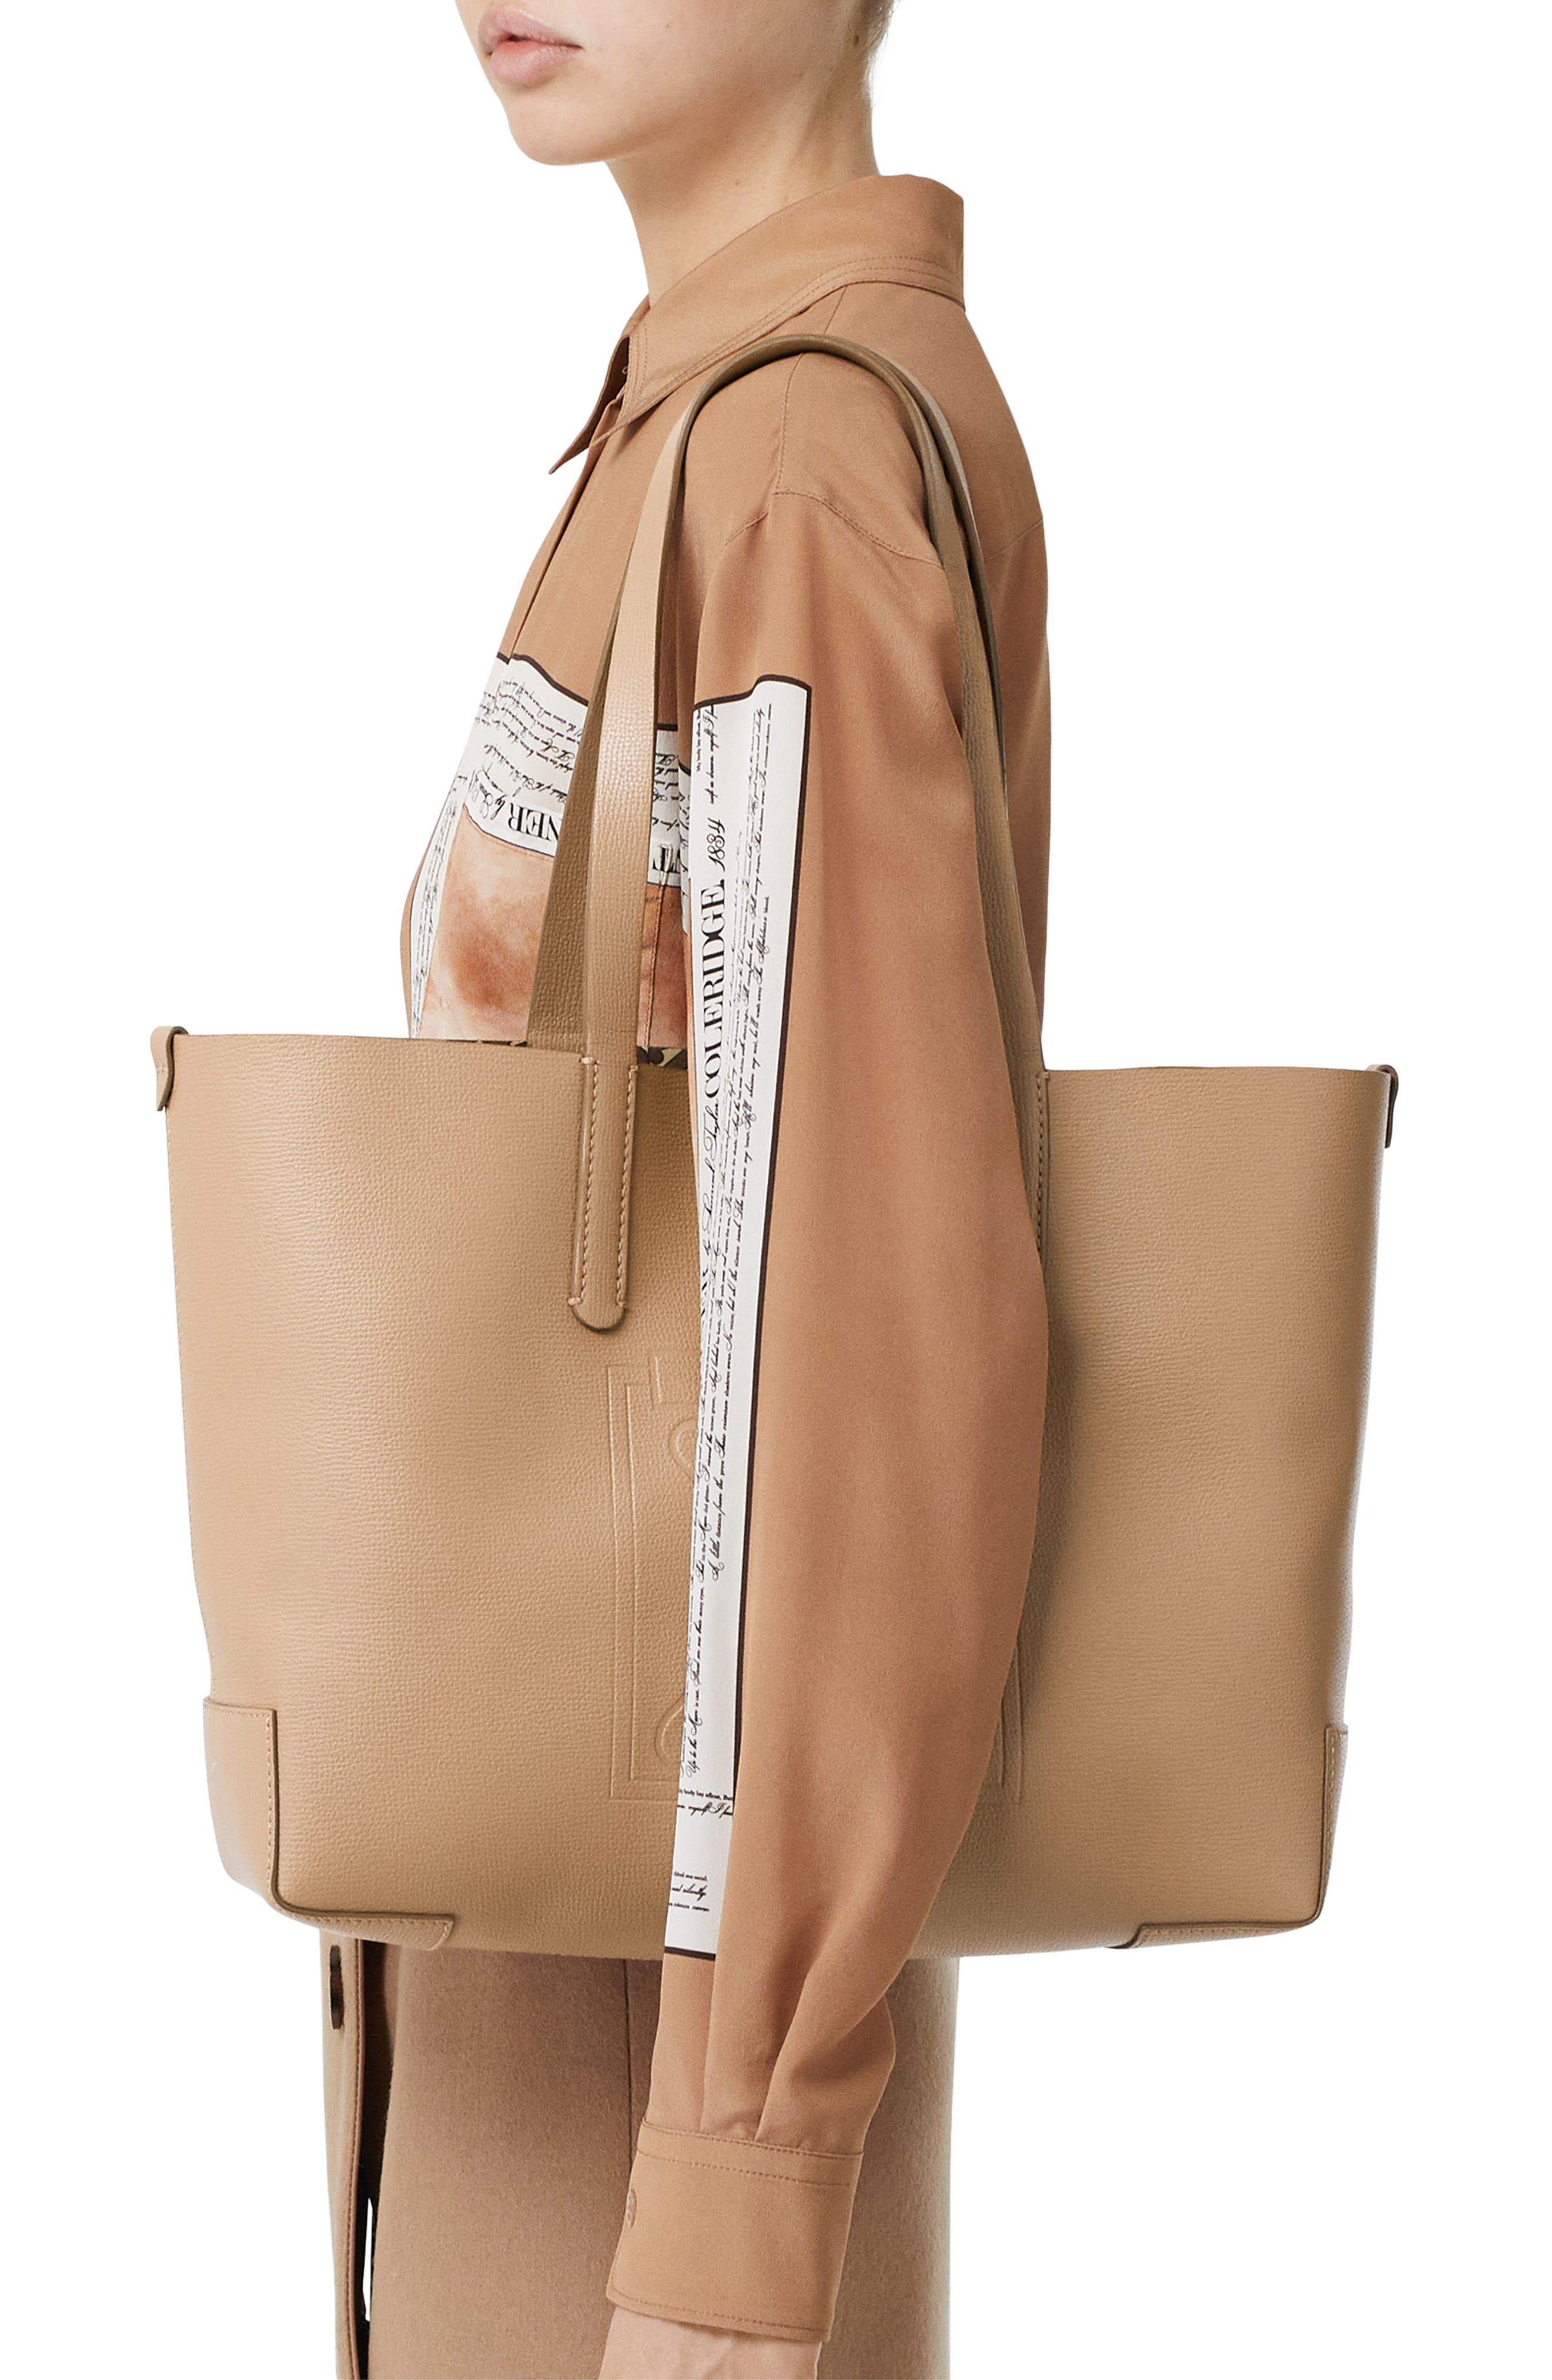 Burberry Totes Embossed Monogram Leather Tote